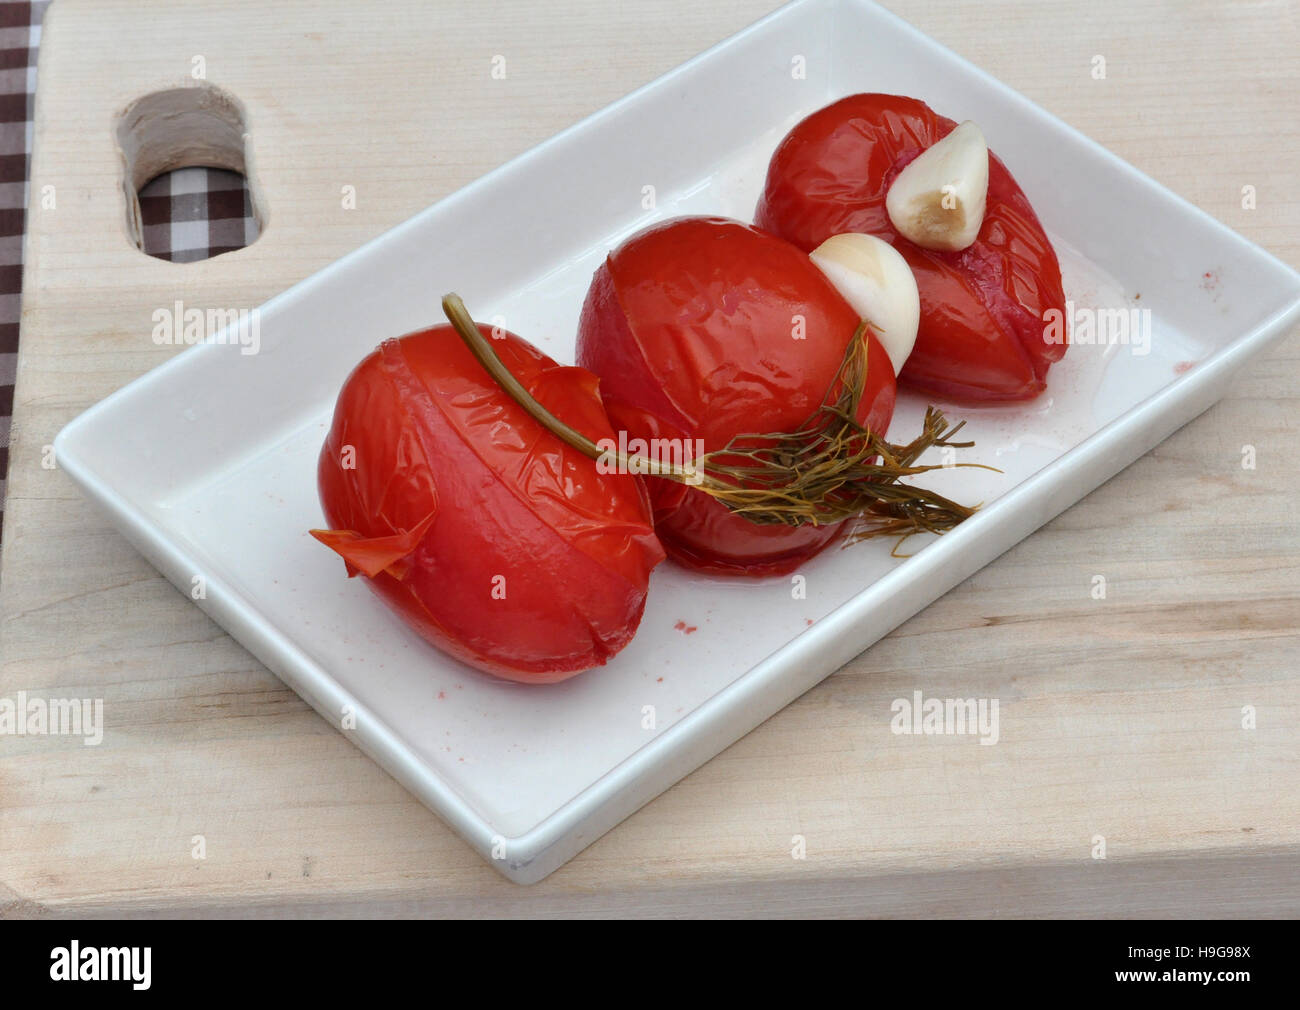 Preserved ripe tomatoes in the Slavic style - Stock Image